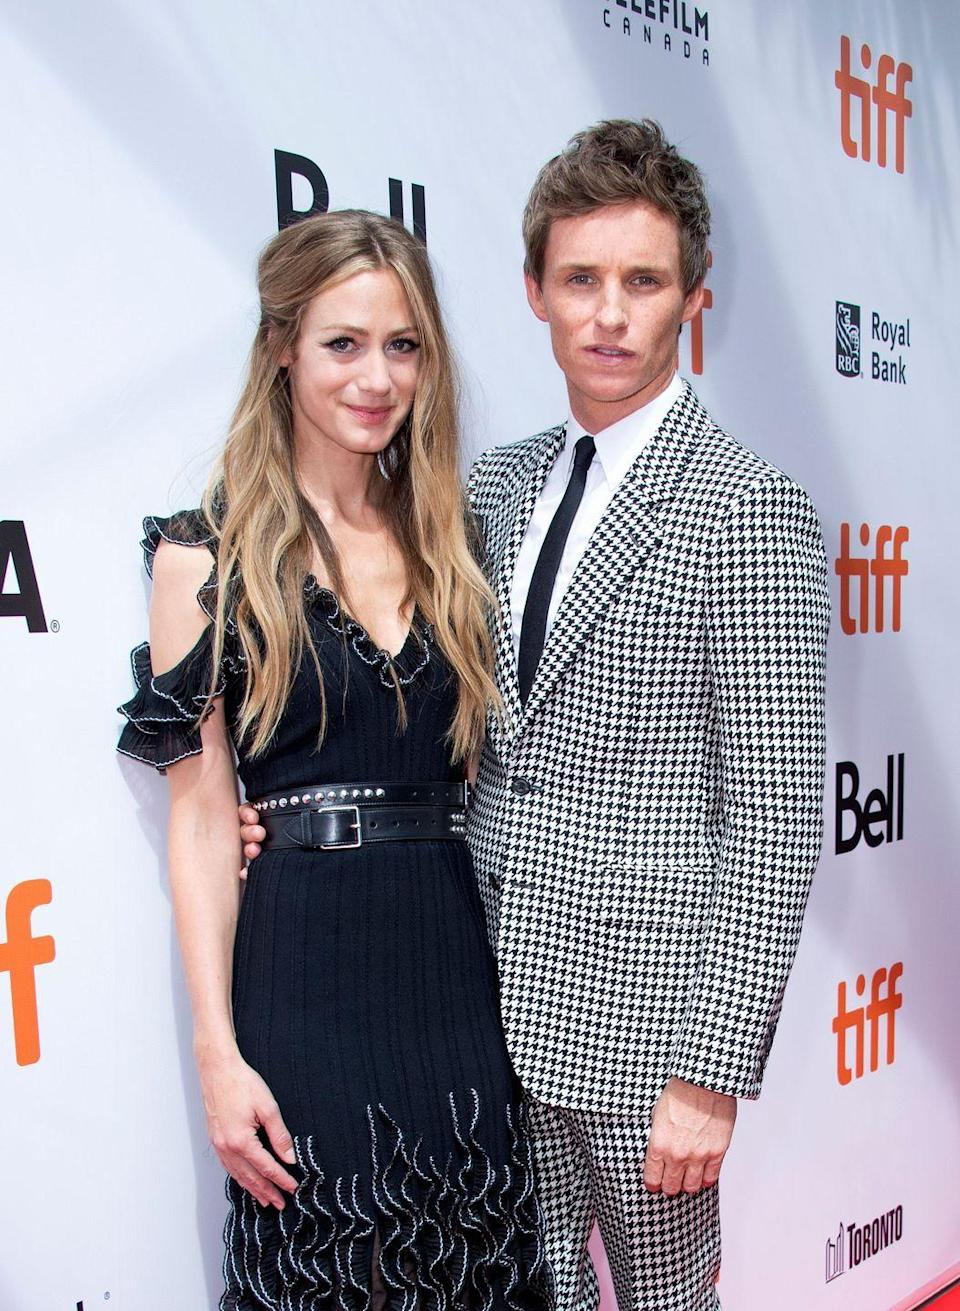 <p>Eddie Redmayne married his former publicist, Hannah Bagshawe, in 2014. They share two children together.</p>